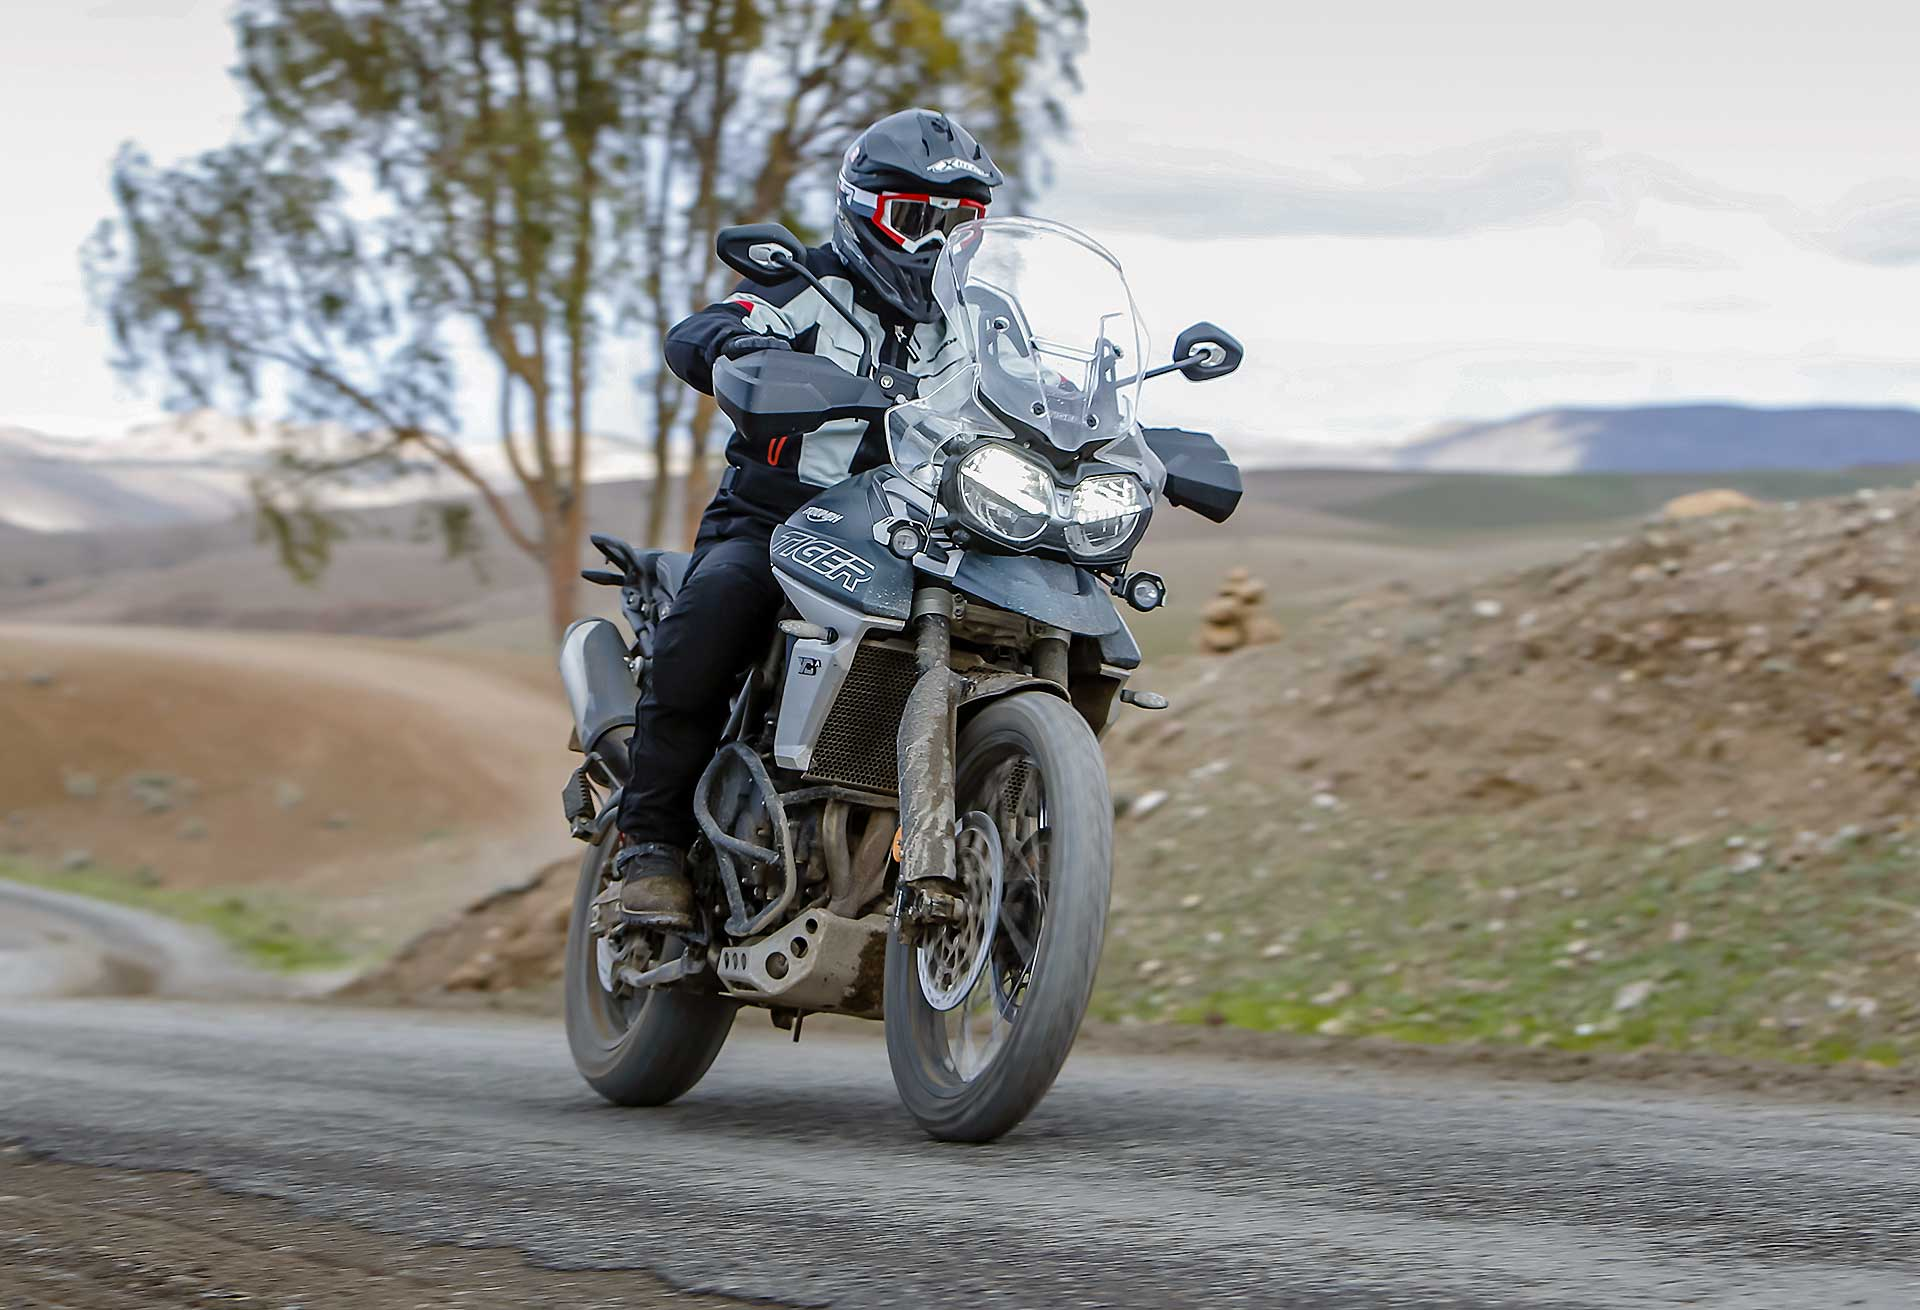 Triumph Tiger 800 2018 movimento asfalto